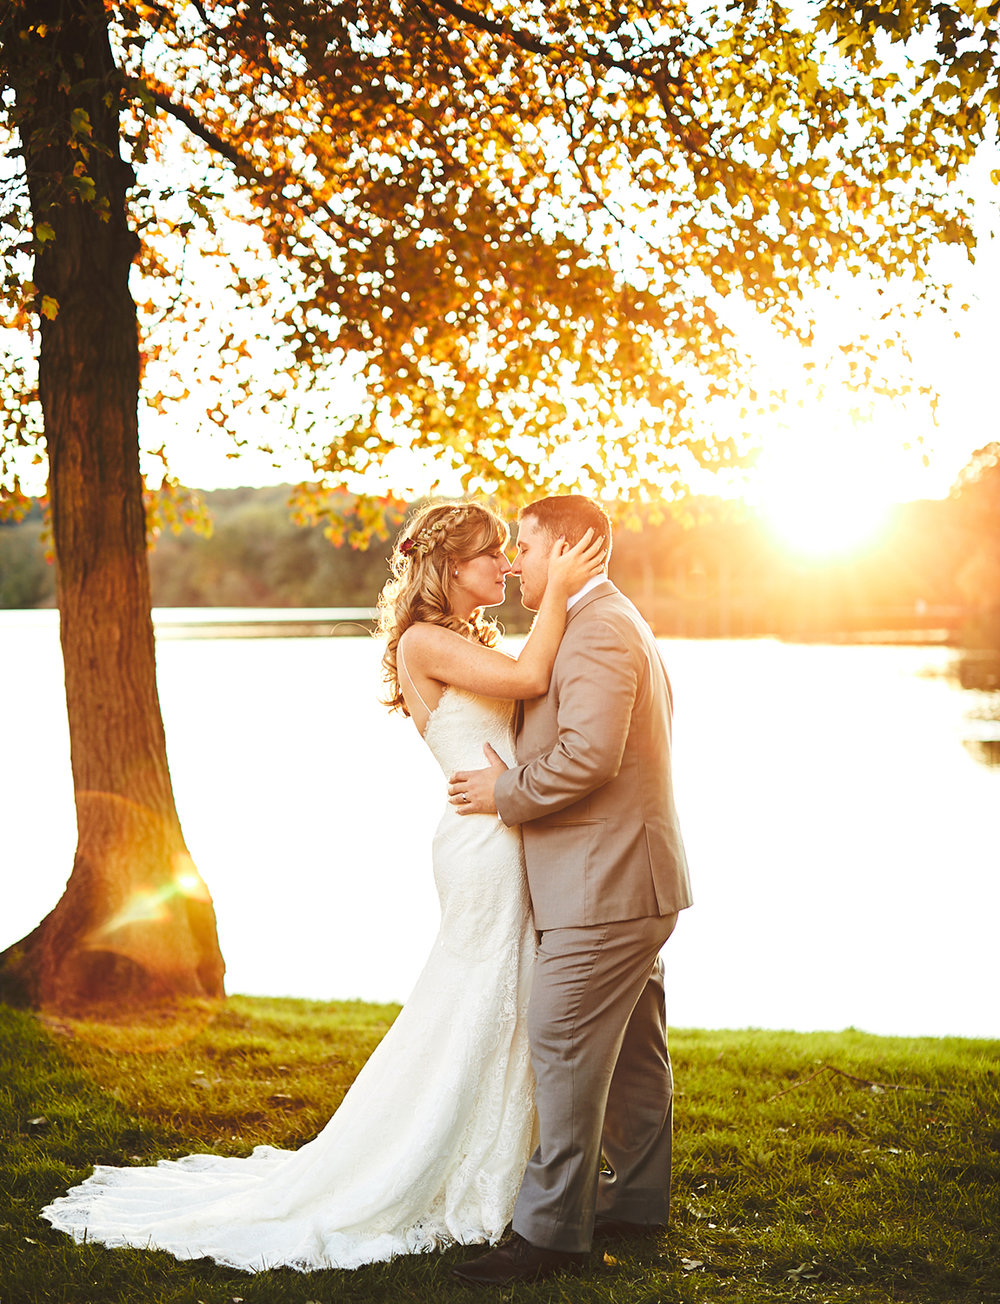 181013_IndianTrailClubFallWeddingPhotography_NJWeddingPhotographer_By_BriJohnsonWeddings_0103.jpg